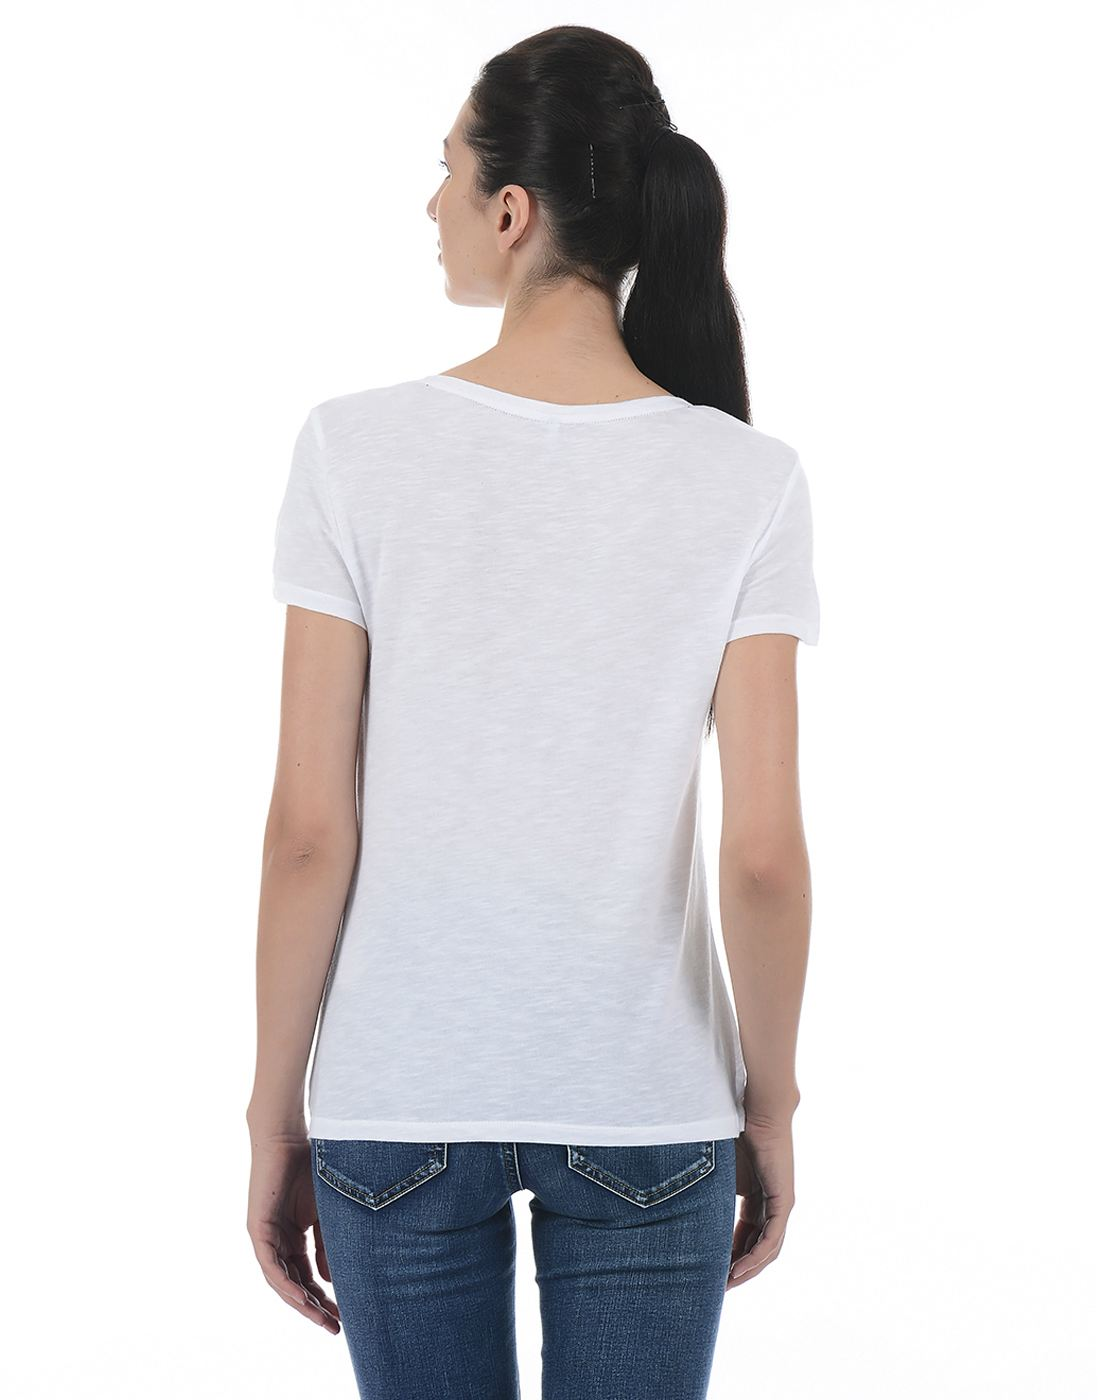 Only Women Casual White T-Shirt